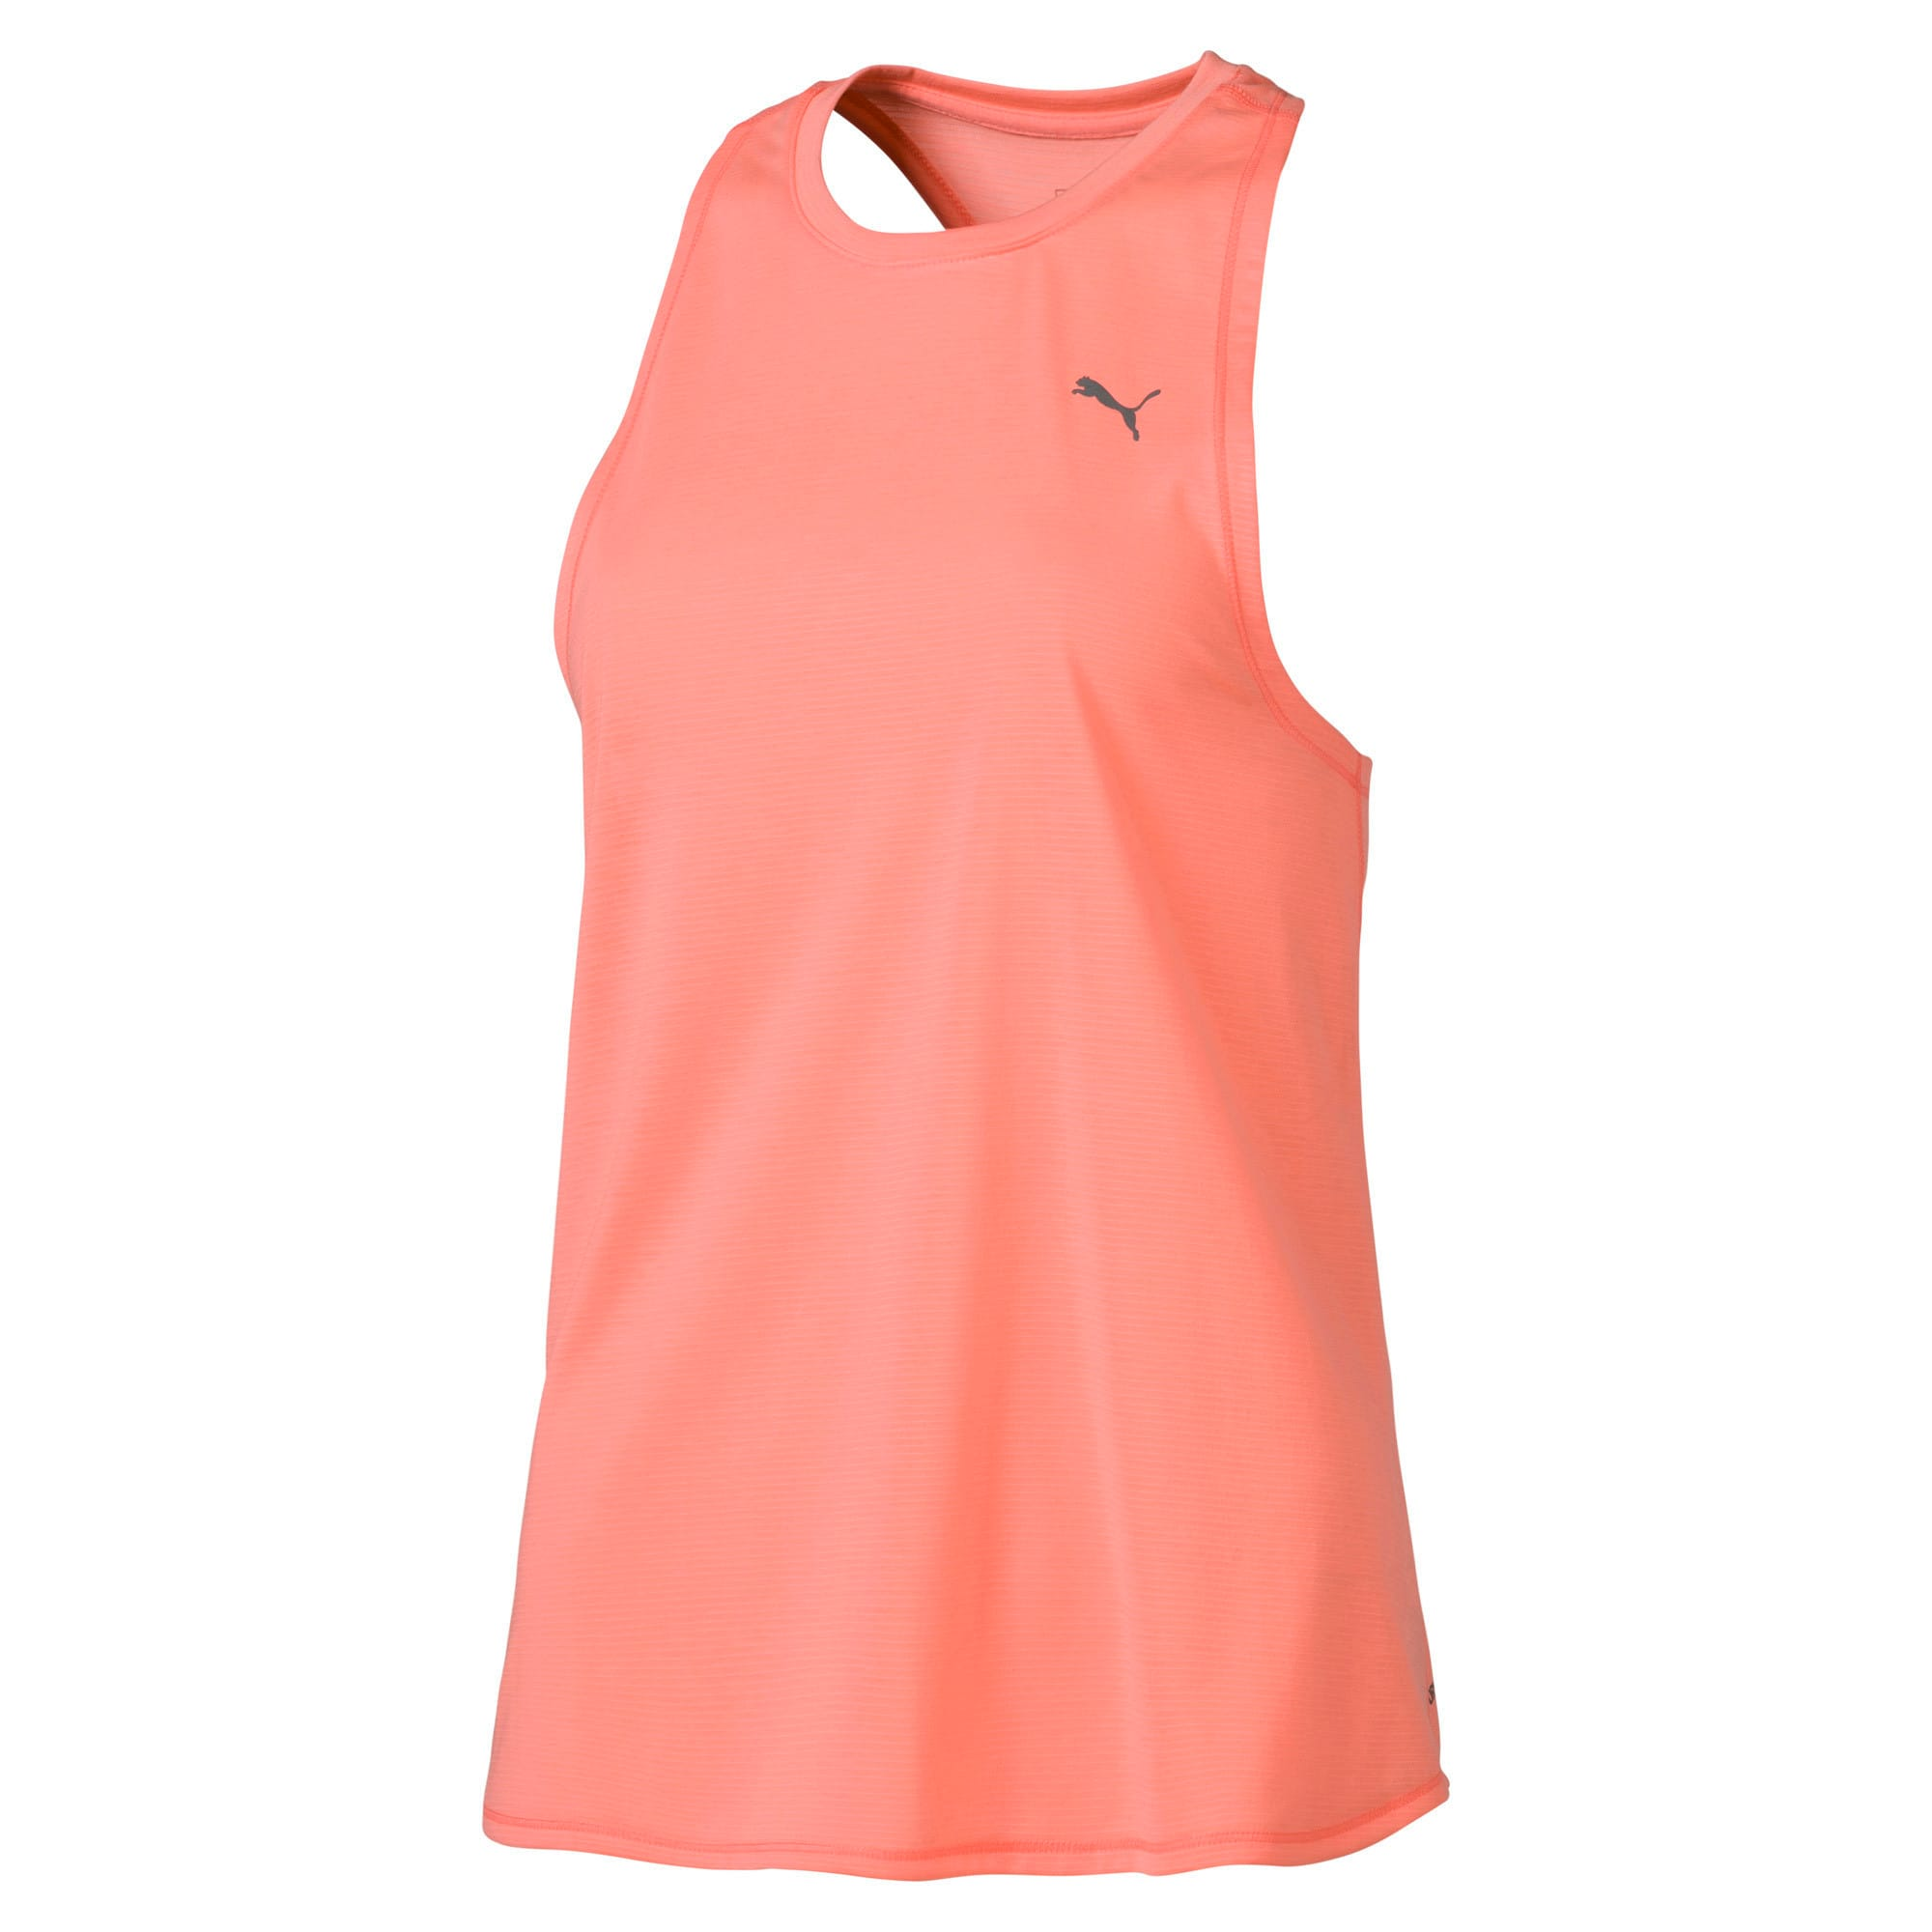 Thumbnail 4 of Running Women's IGNITE Mono Tank Top, Bright Peach, medium